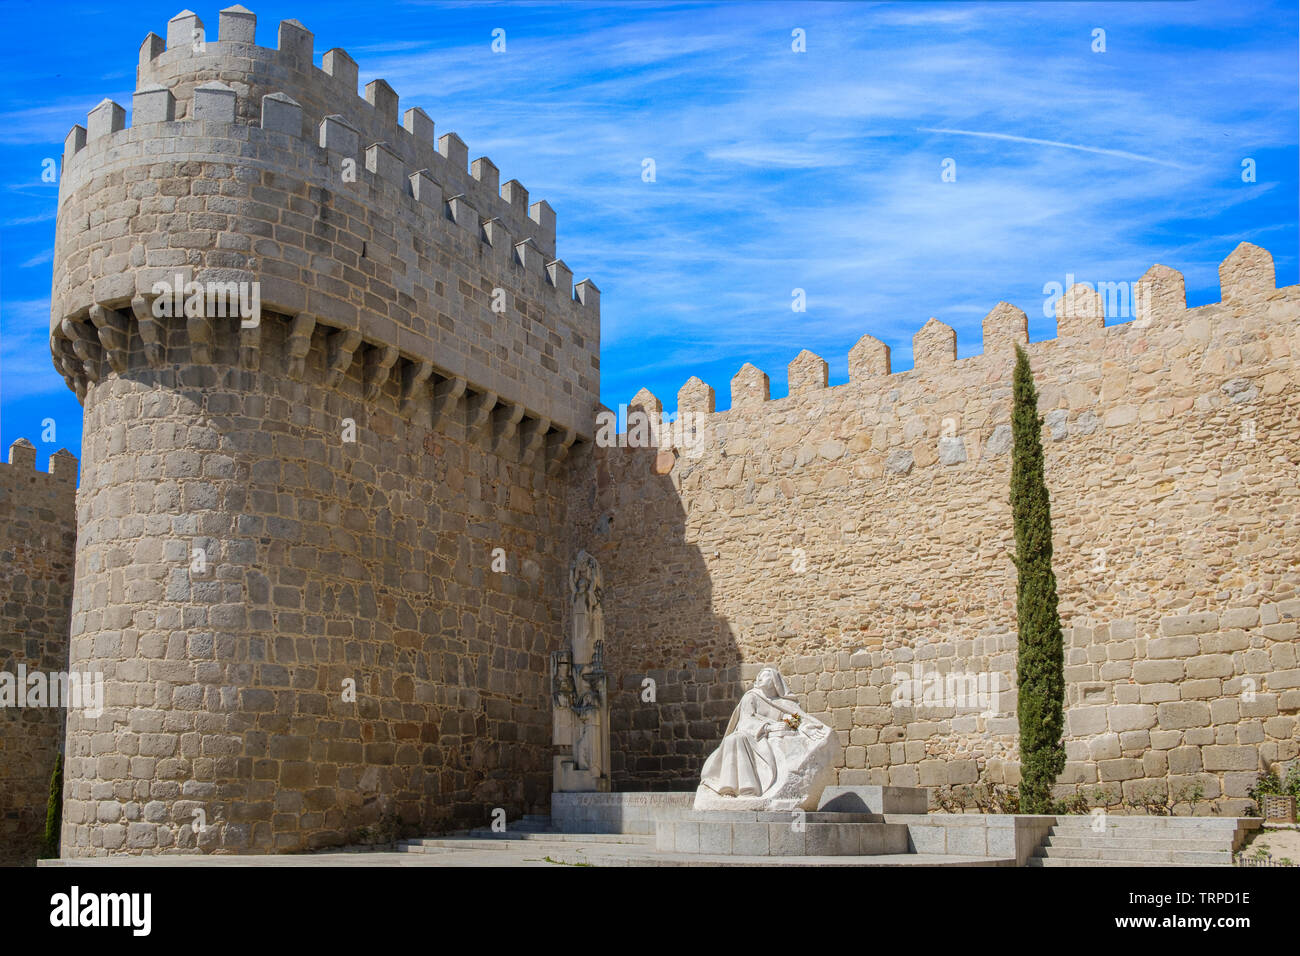 Walls surrounding Spanish city of Avila, with Santa Teresa sculpture - Stock Image